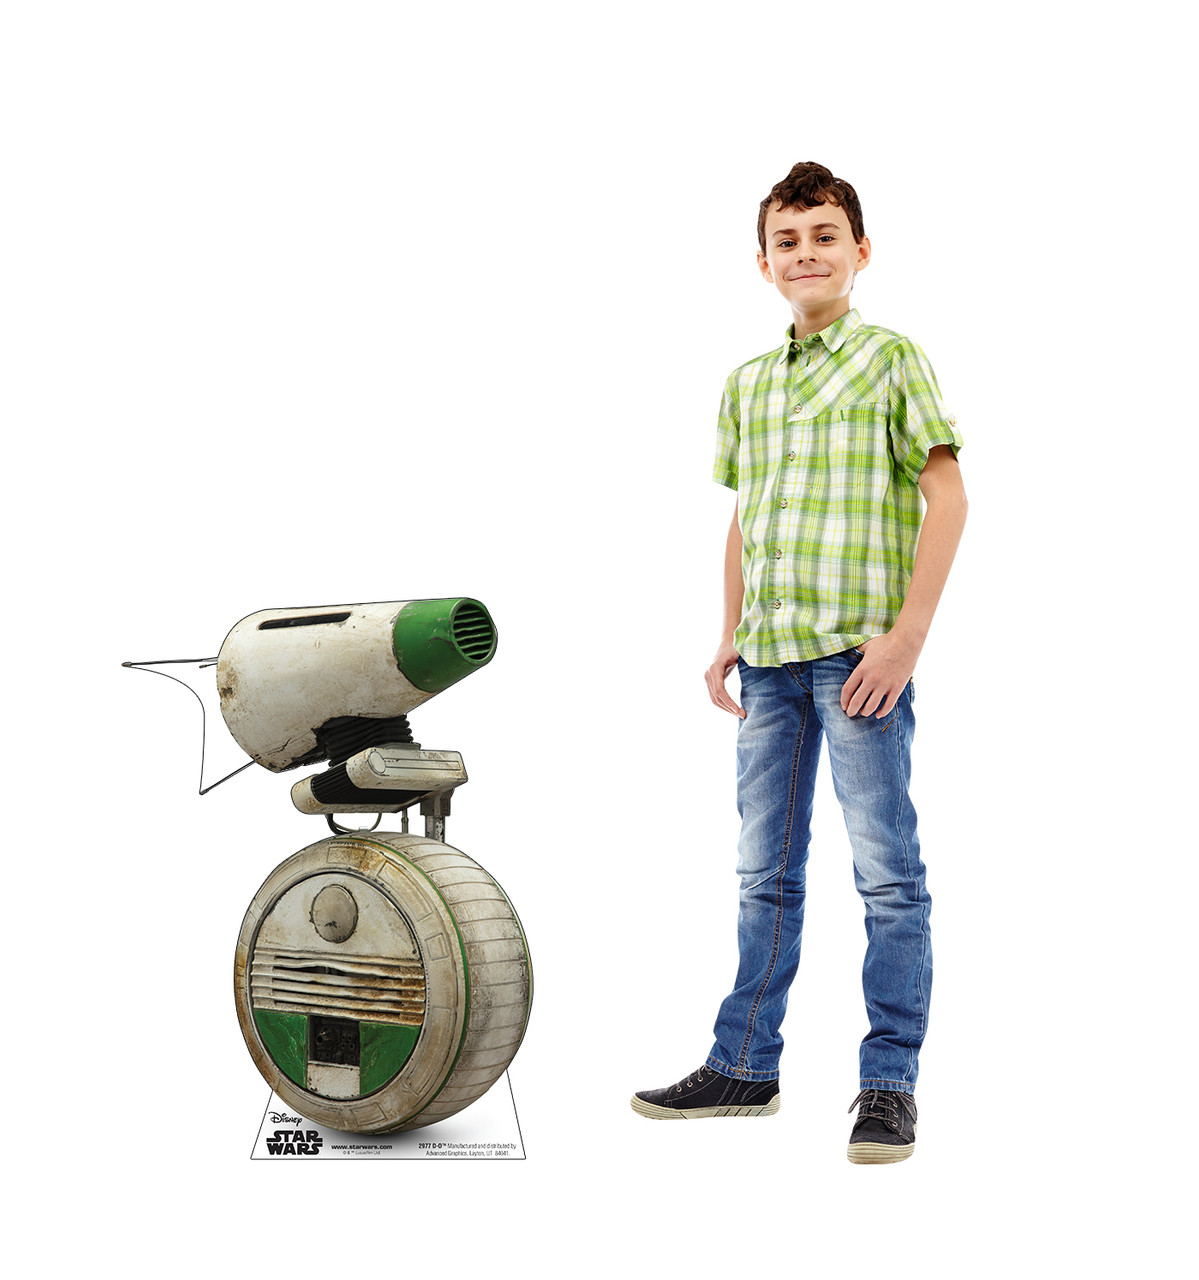 Life-size cardboard standee of D-O™ (Star Wars IX) with model.